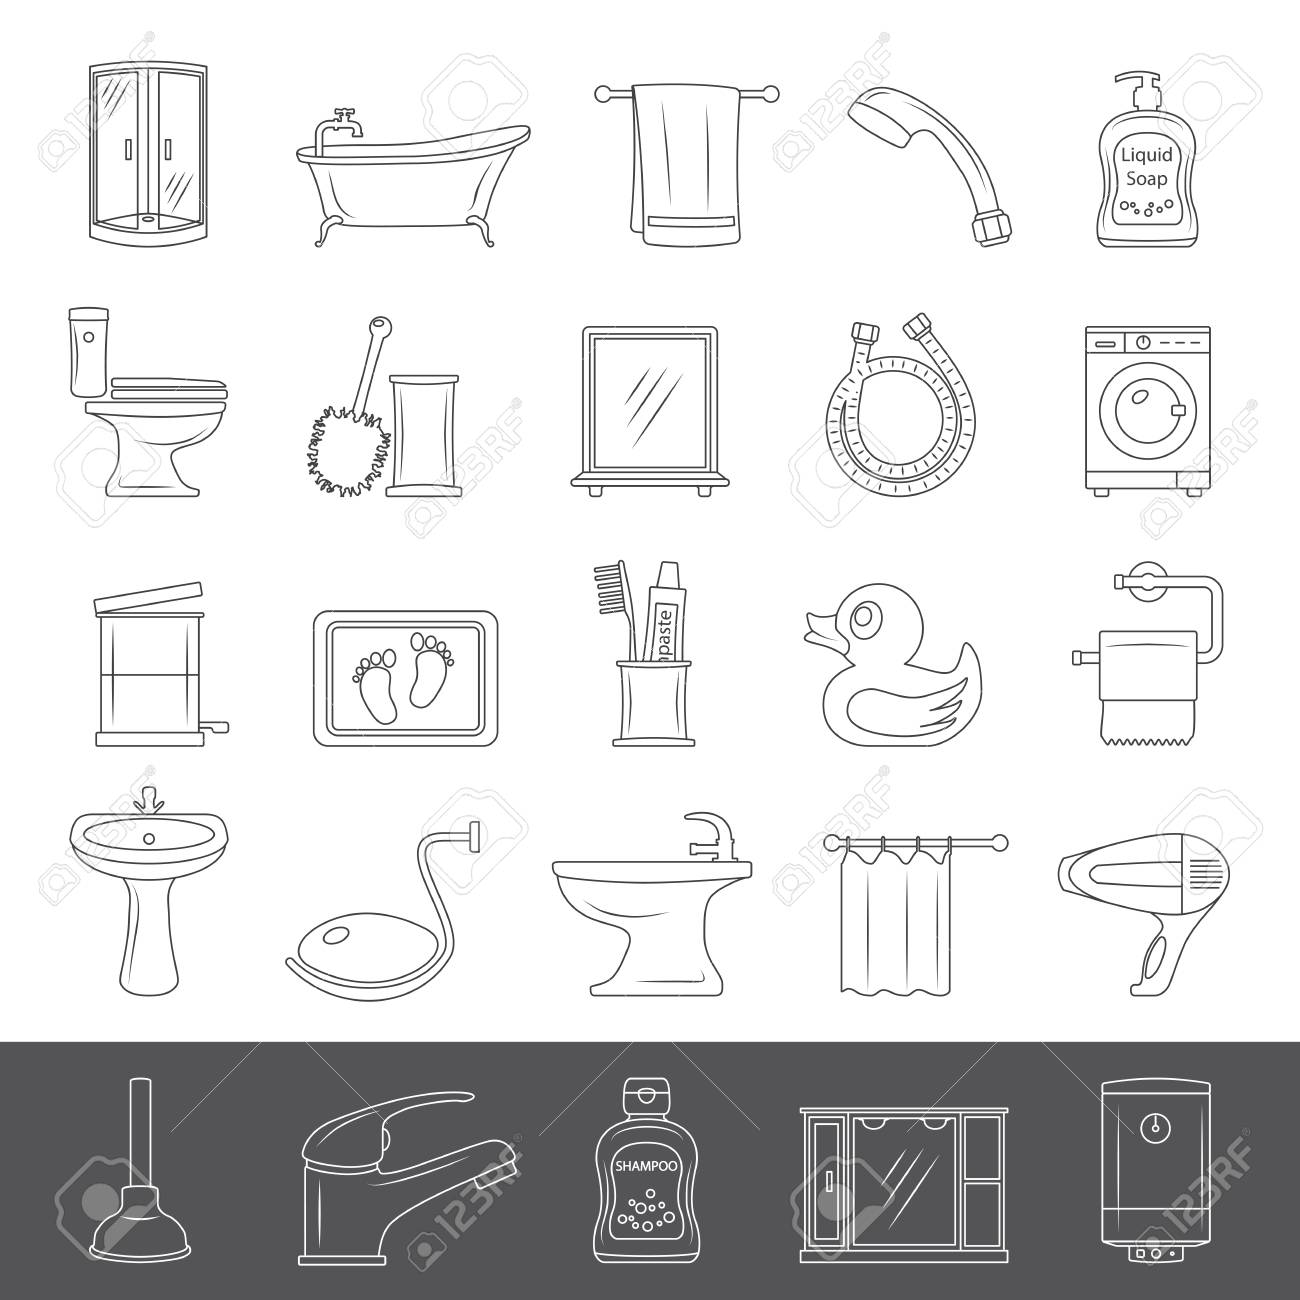 Set Of Bathroom Equipment And Accessories Royalty Free Cliparts ...